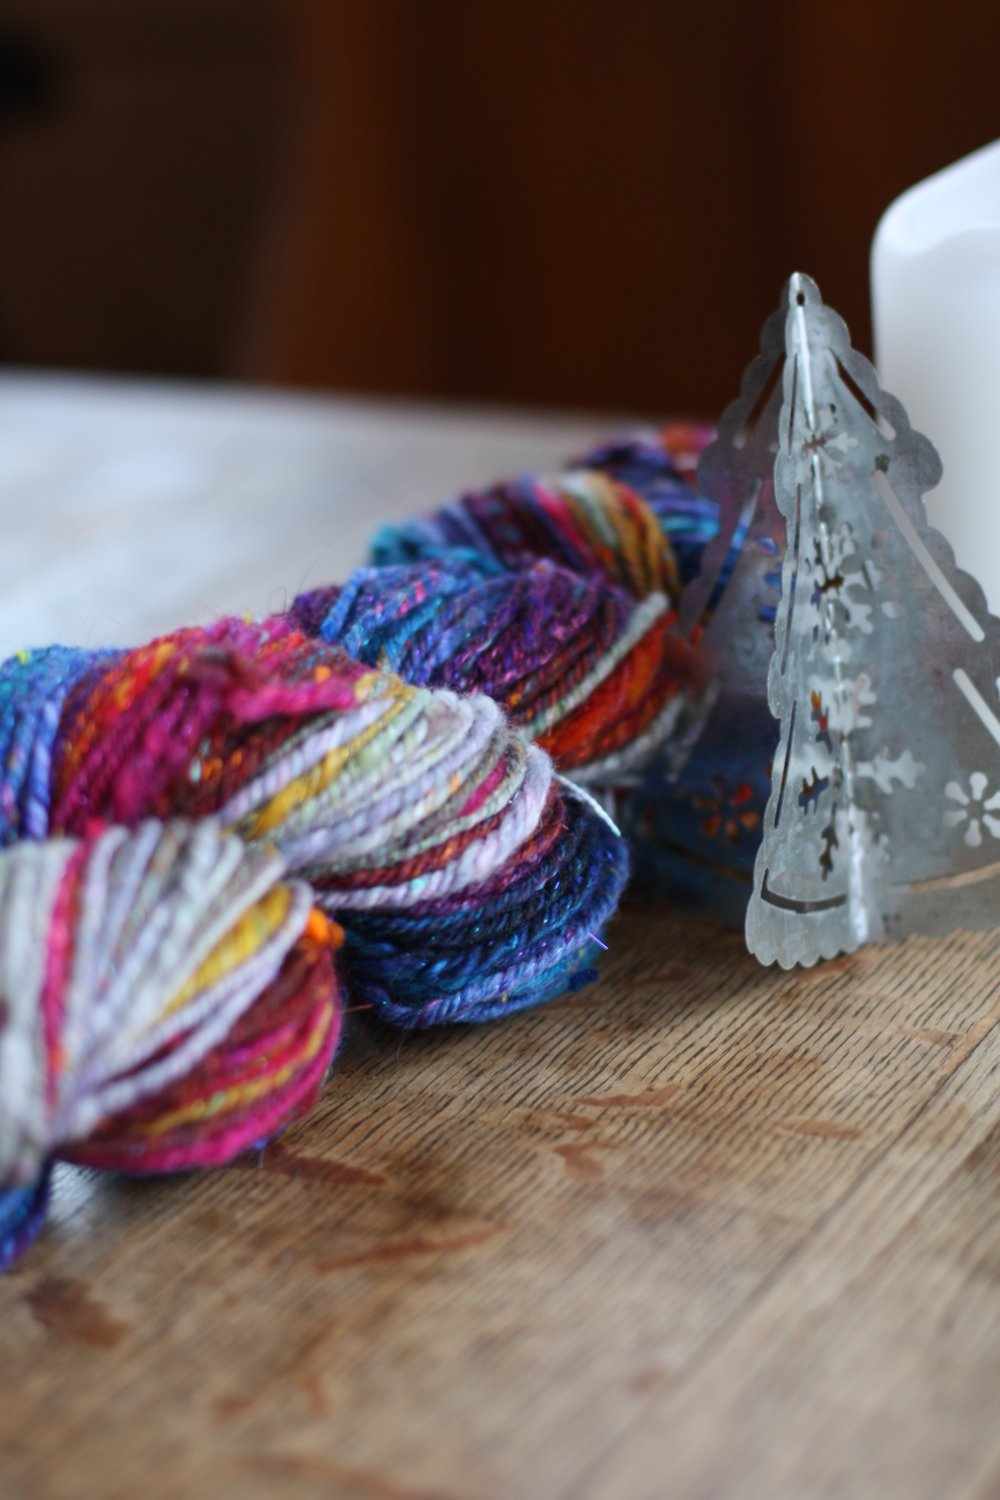 Chain plied worsted weight handspun yarn in gorgesous jewel tones